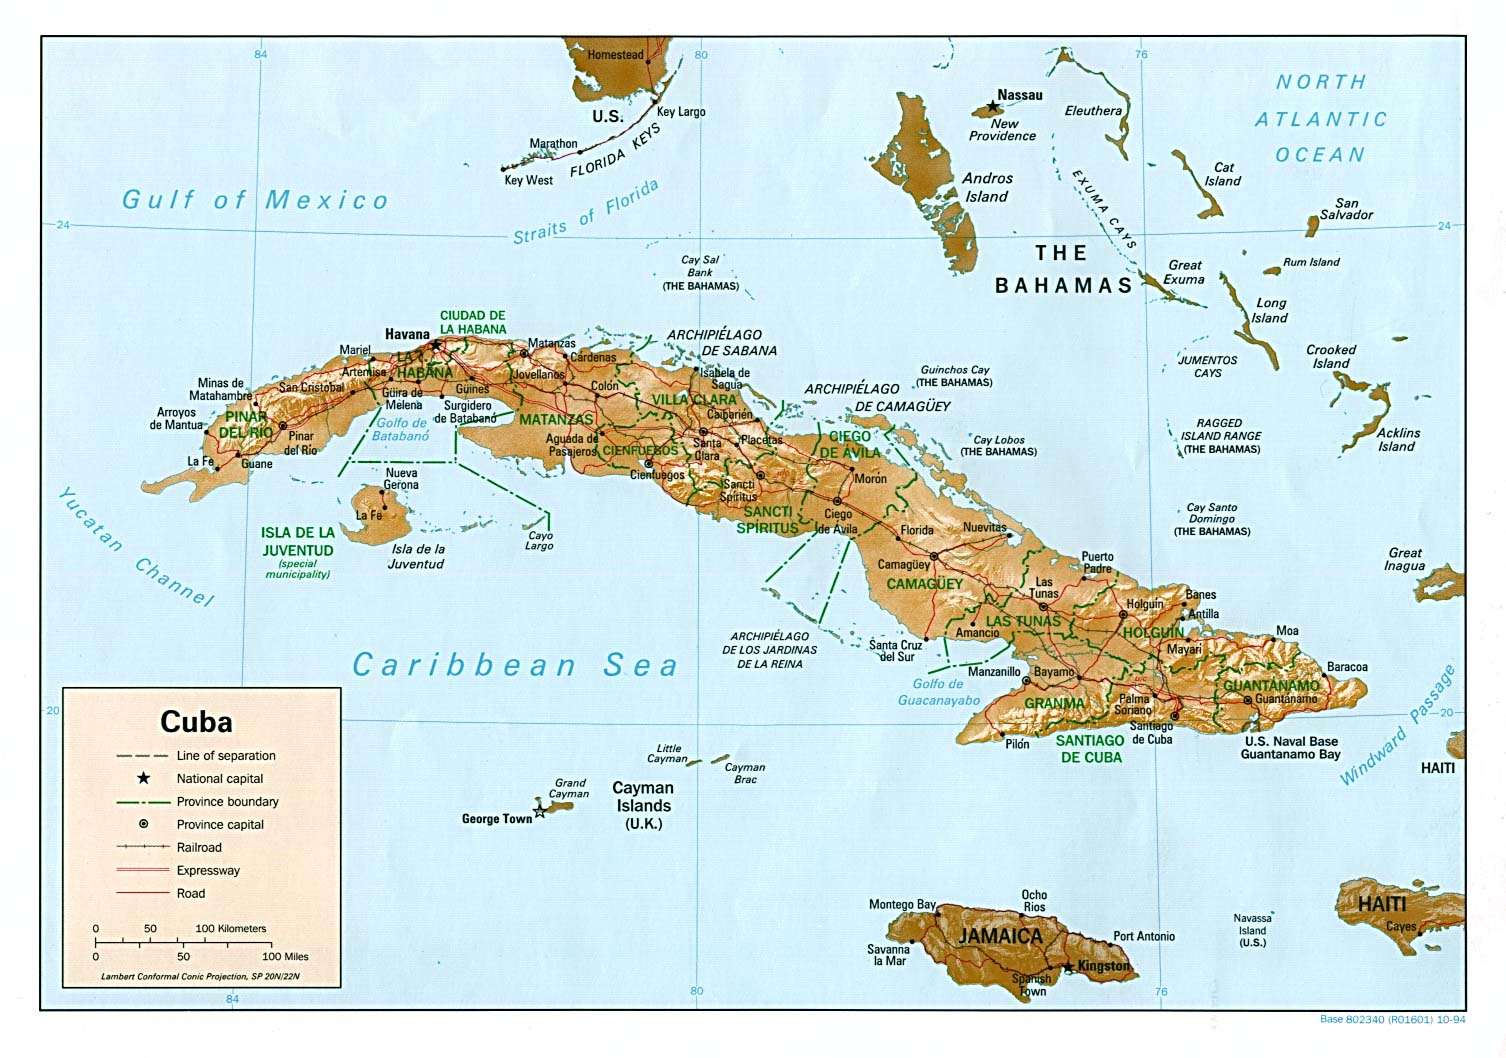 Mapa Relieve Sombreado de Cuba